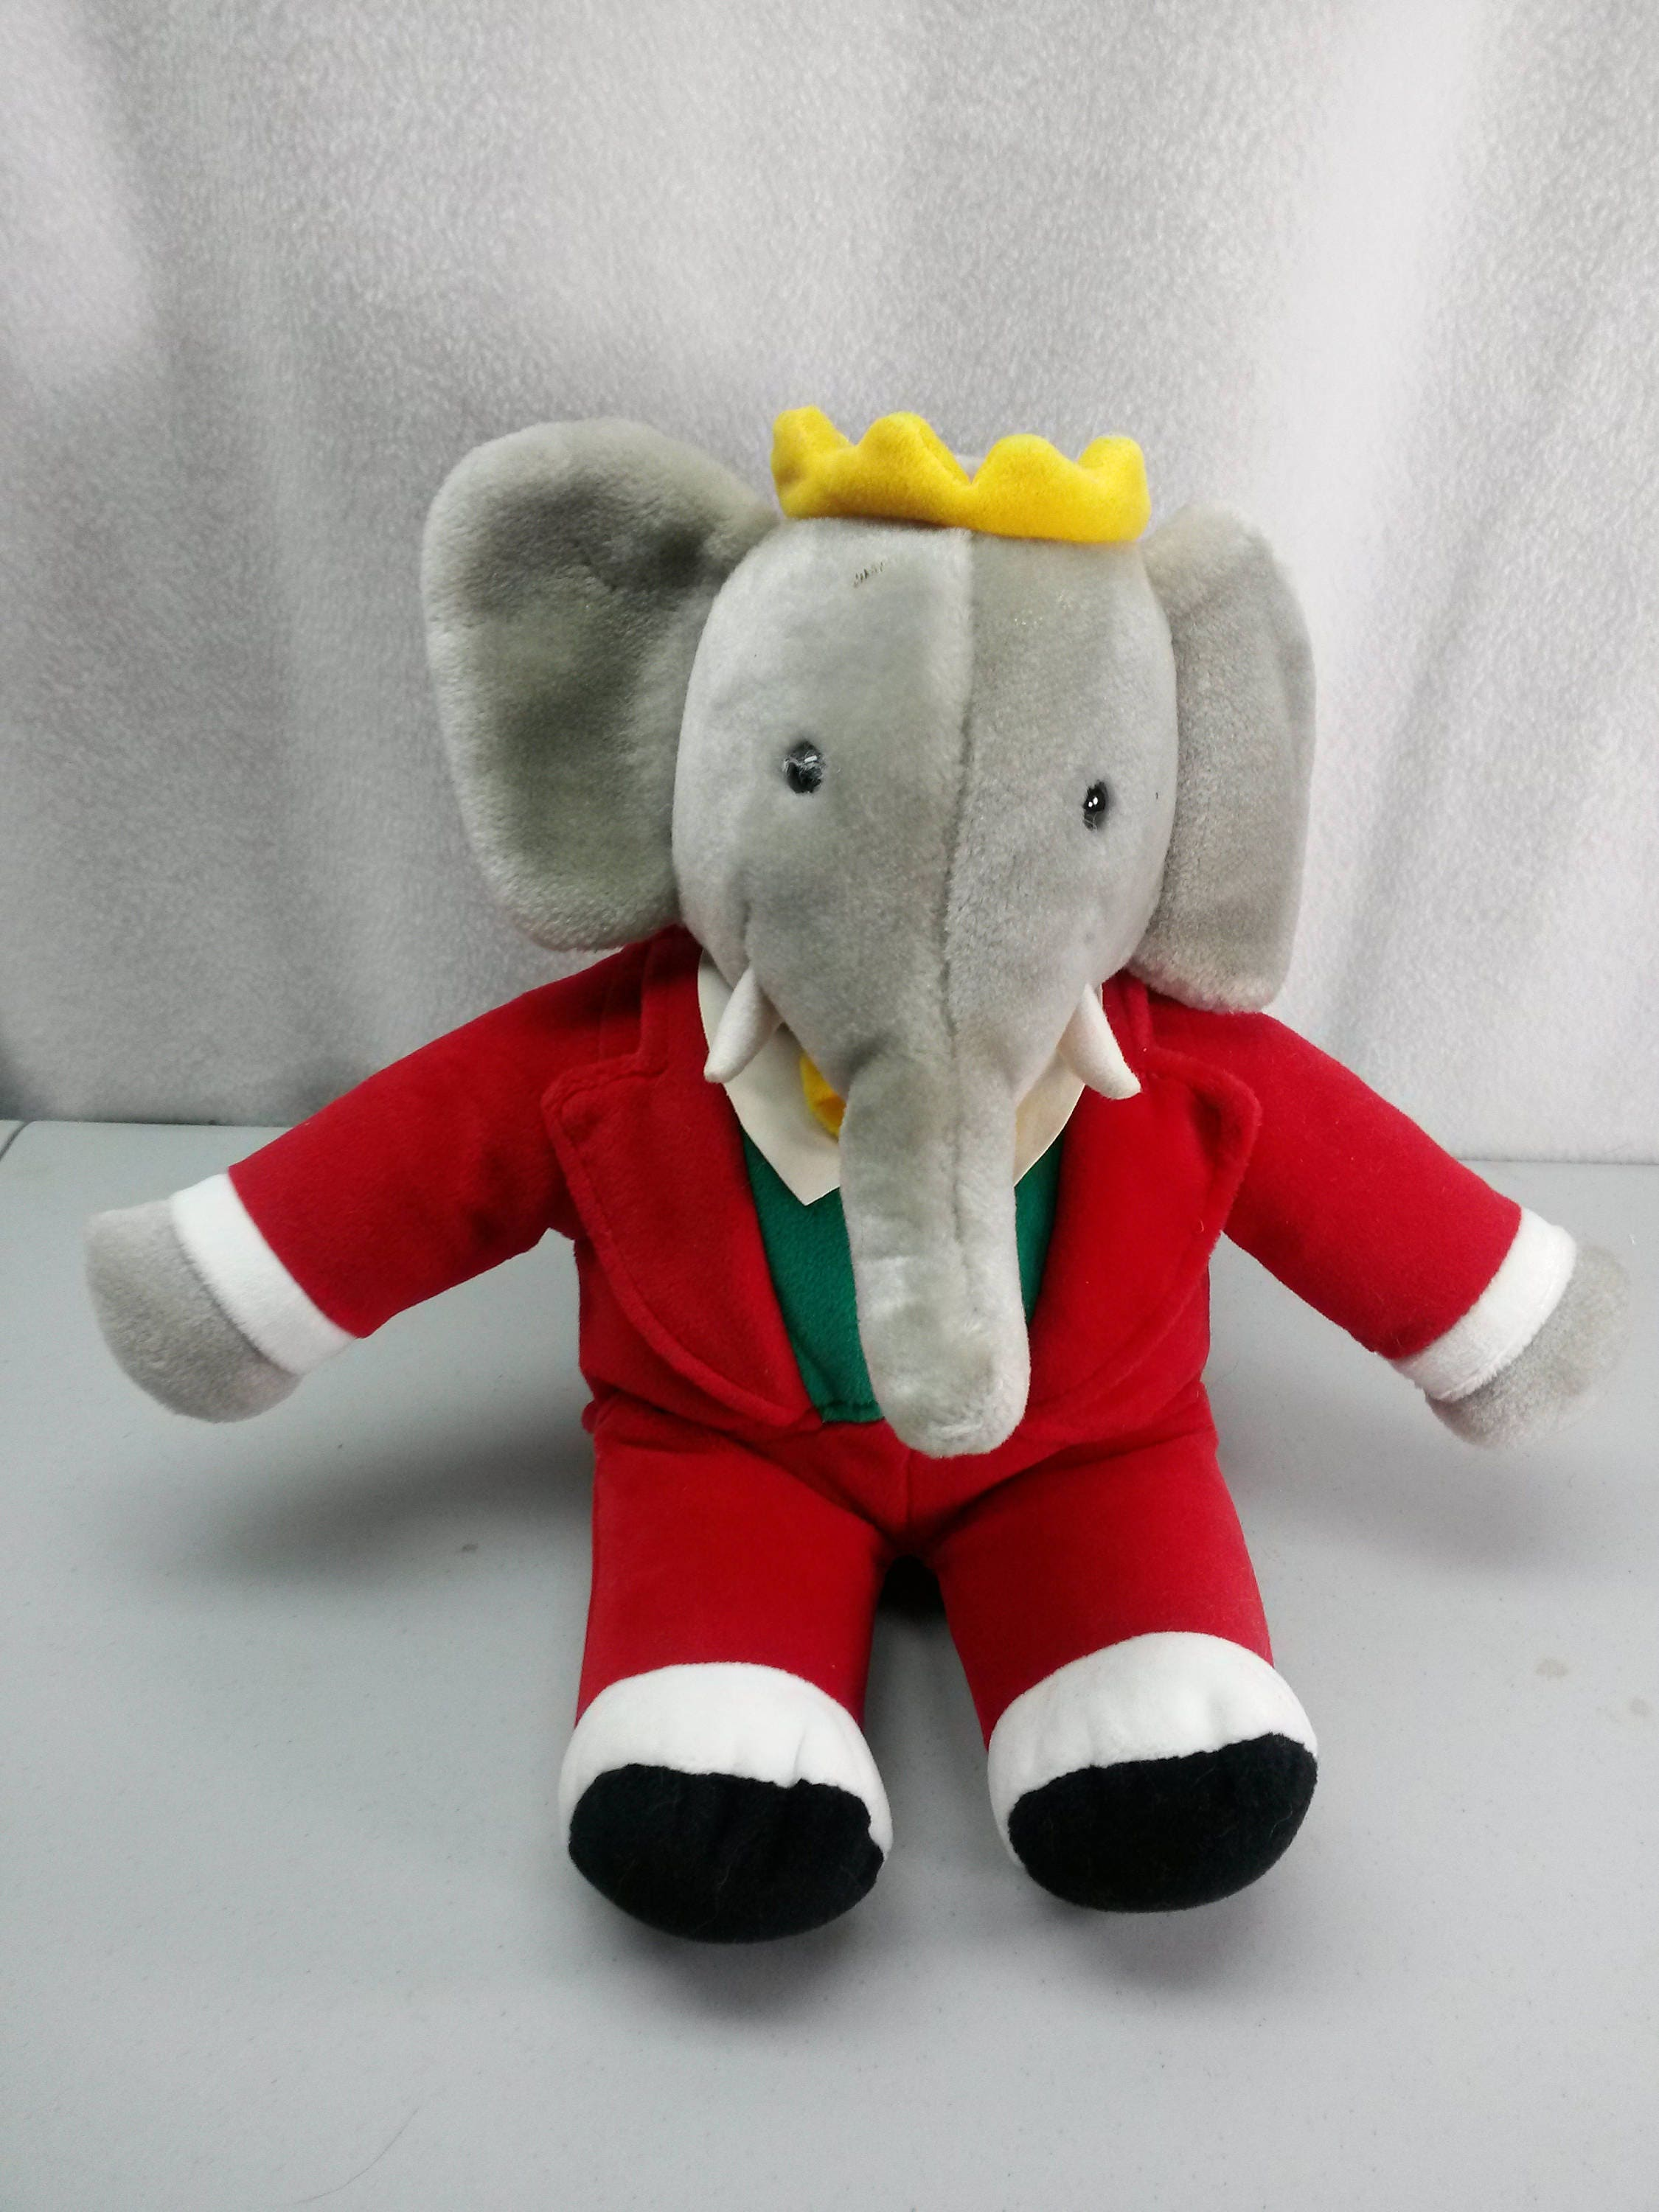 Babar The Elephant Plush Stuffed Animal Toy Gund 1988 Red Etsy